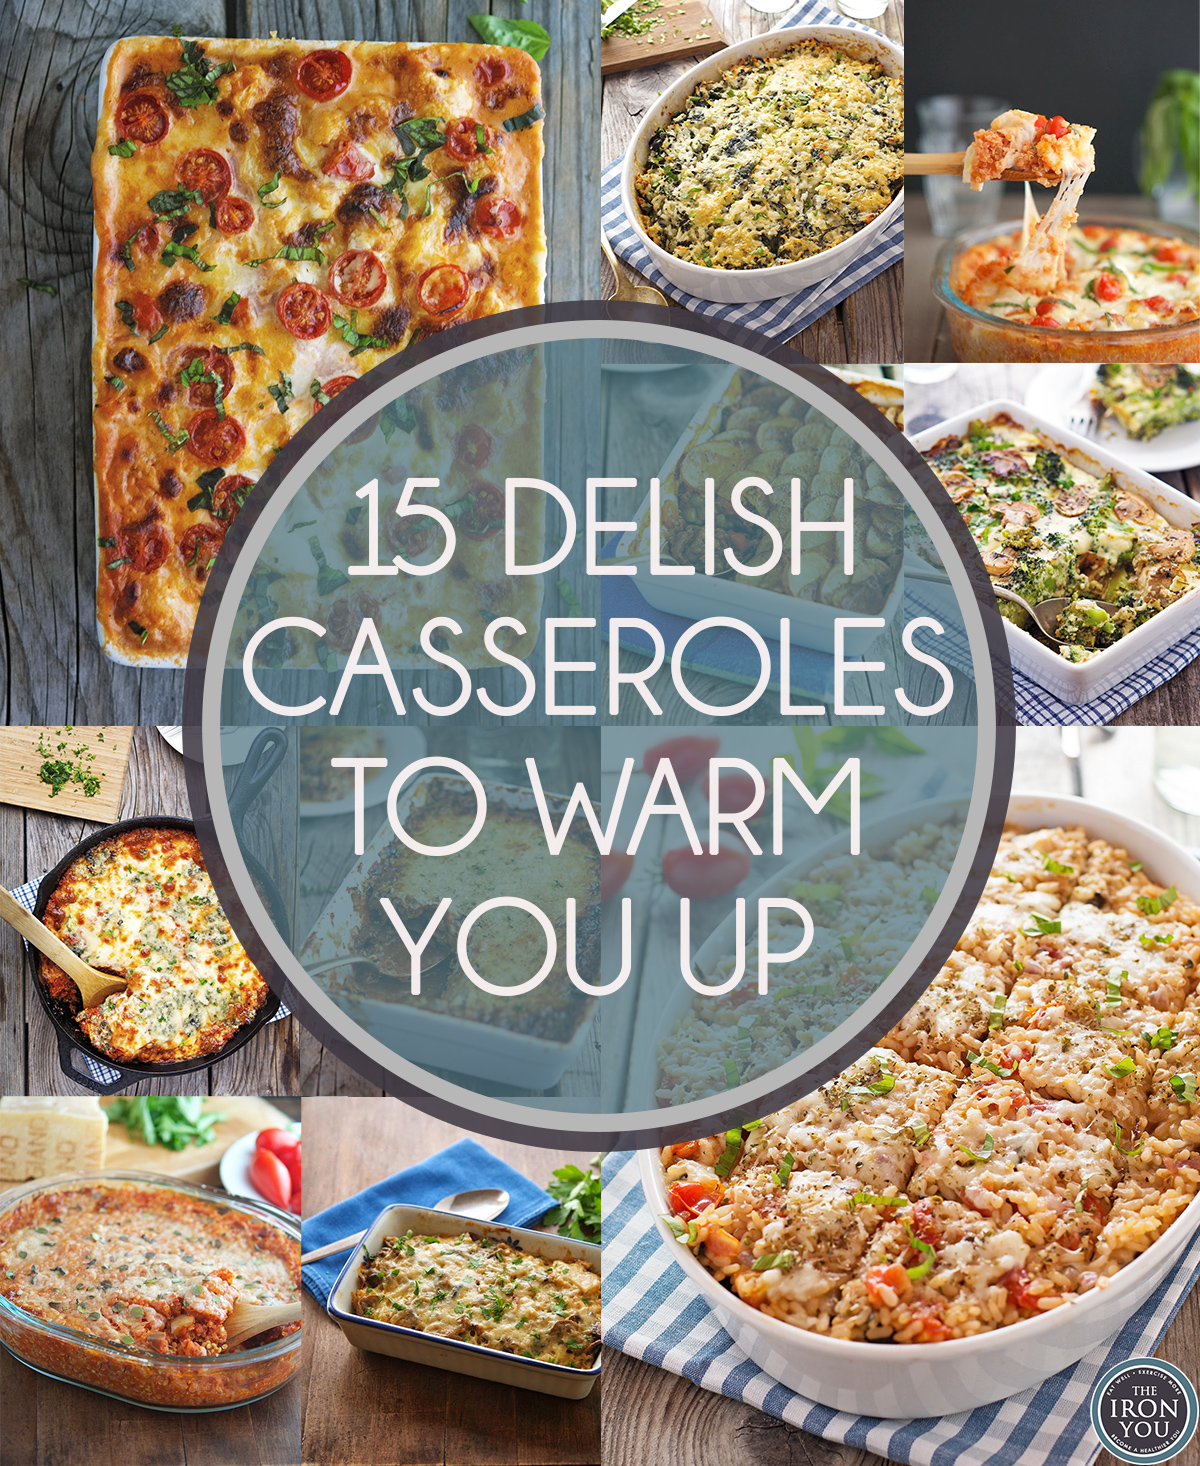 15 Delish Casseroles To Warm You Up